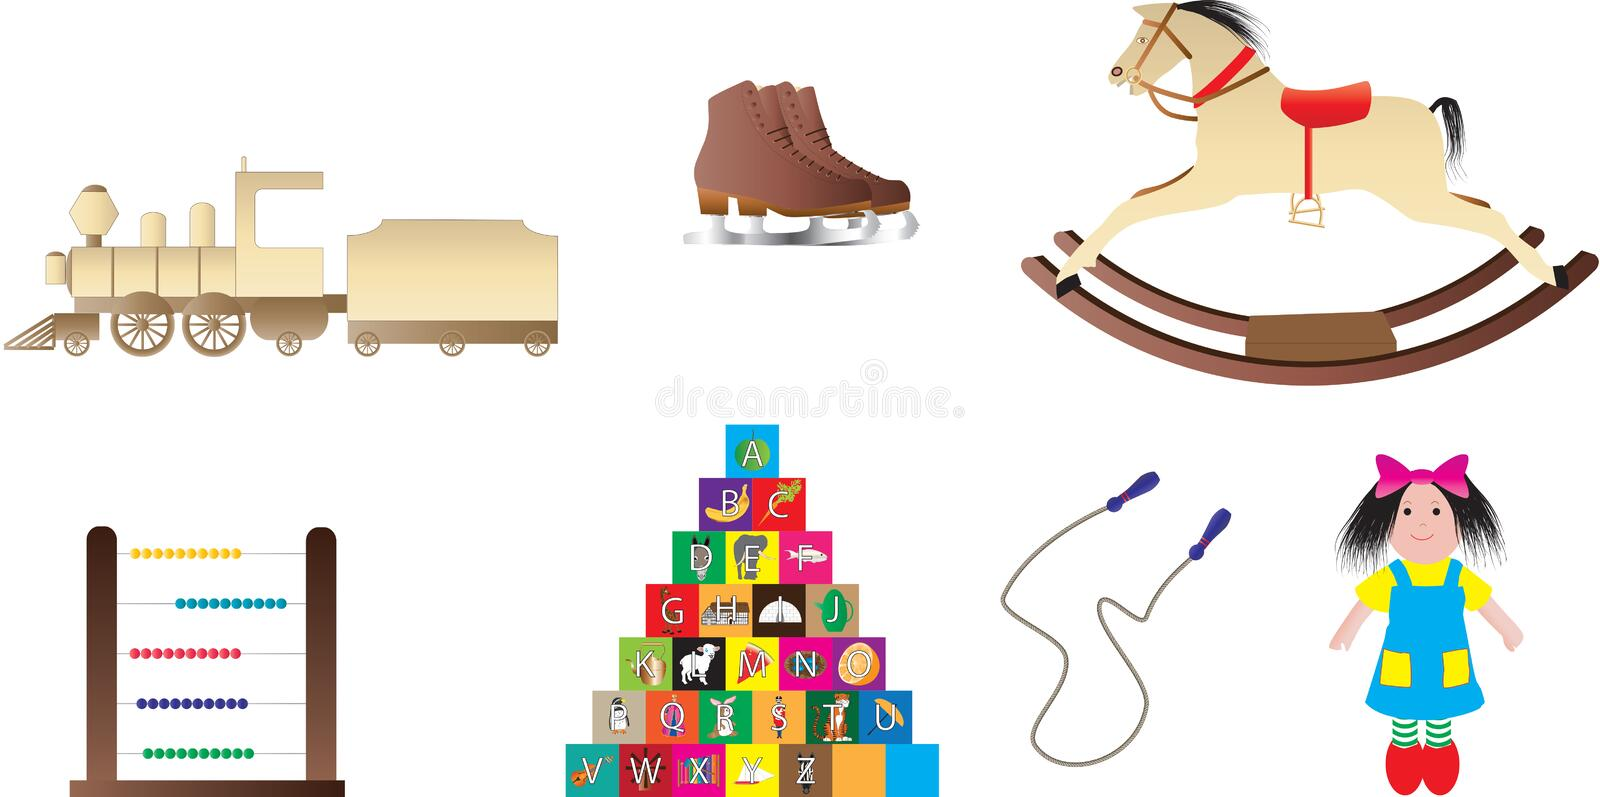 Childrens Toys. Traditional Childrens Toys,Rocking Horse,Building Bricks,Rag Doll,Train,Skipping Rope,Abacus,Ice Skates stock illustration